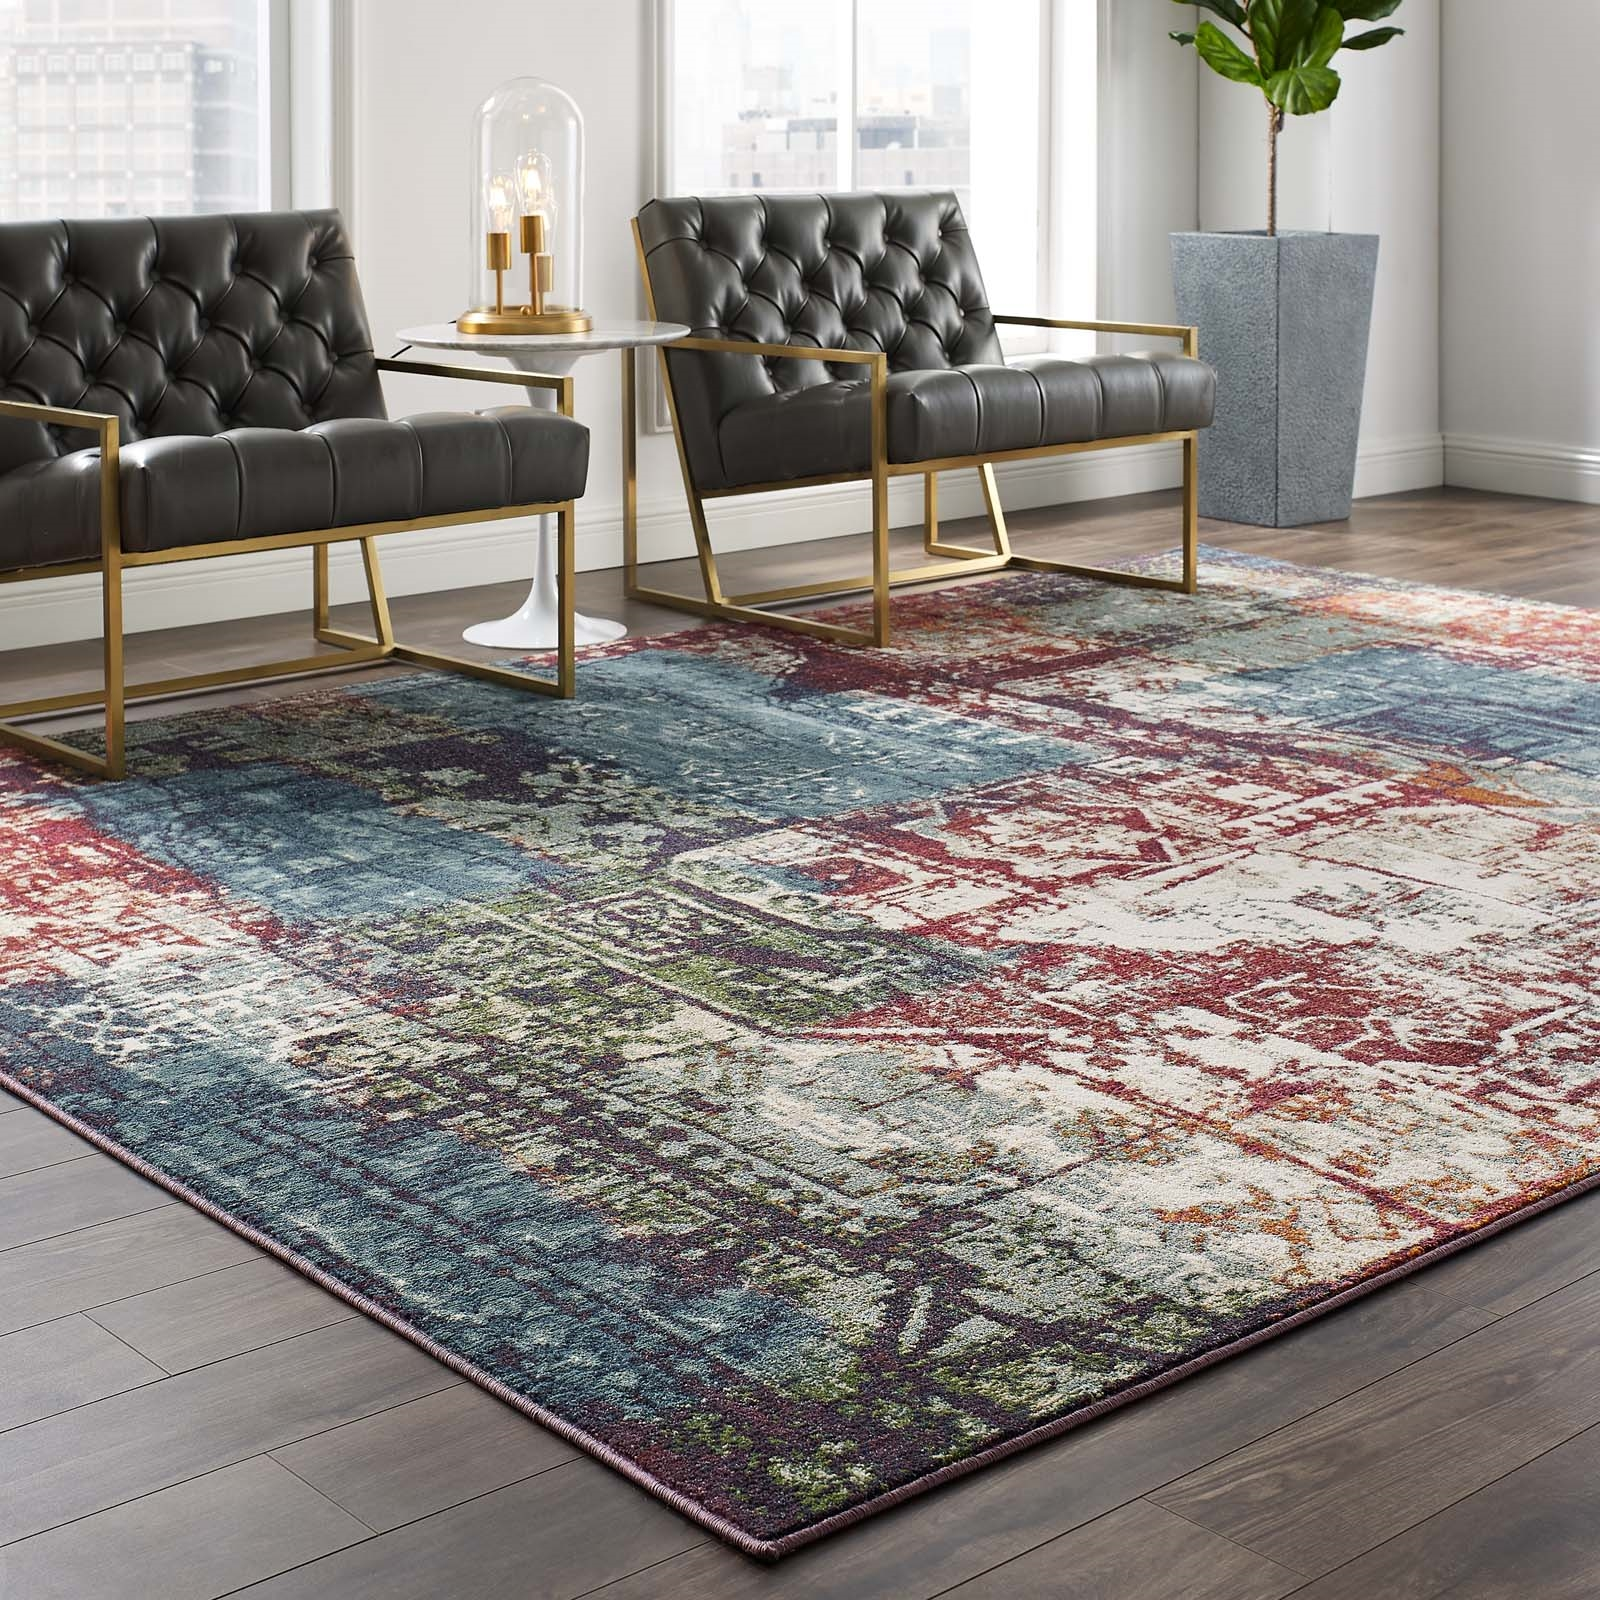 Tribute Elowen Contemporary Modern Vintage Mosaic 8x10 Area Rug in Multicolored